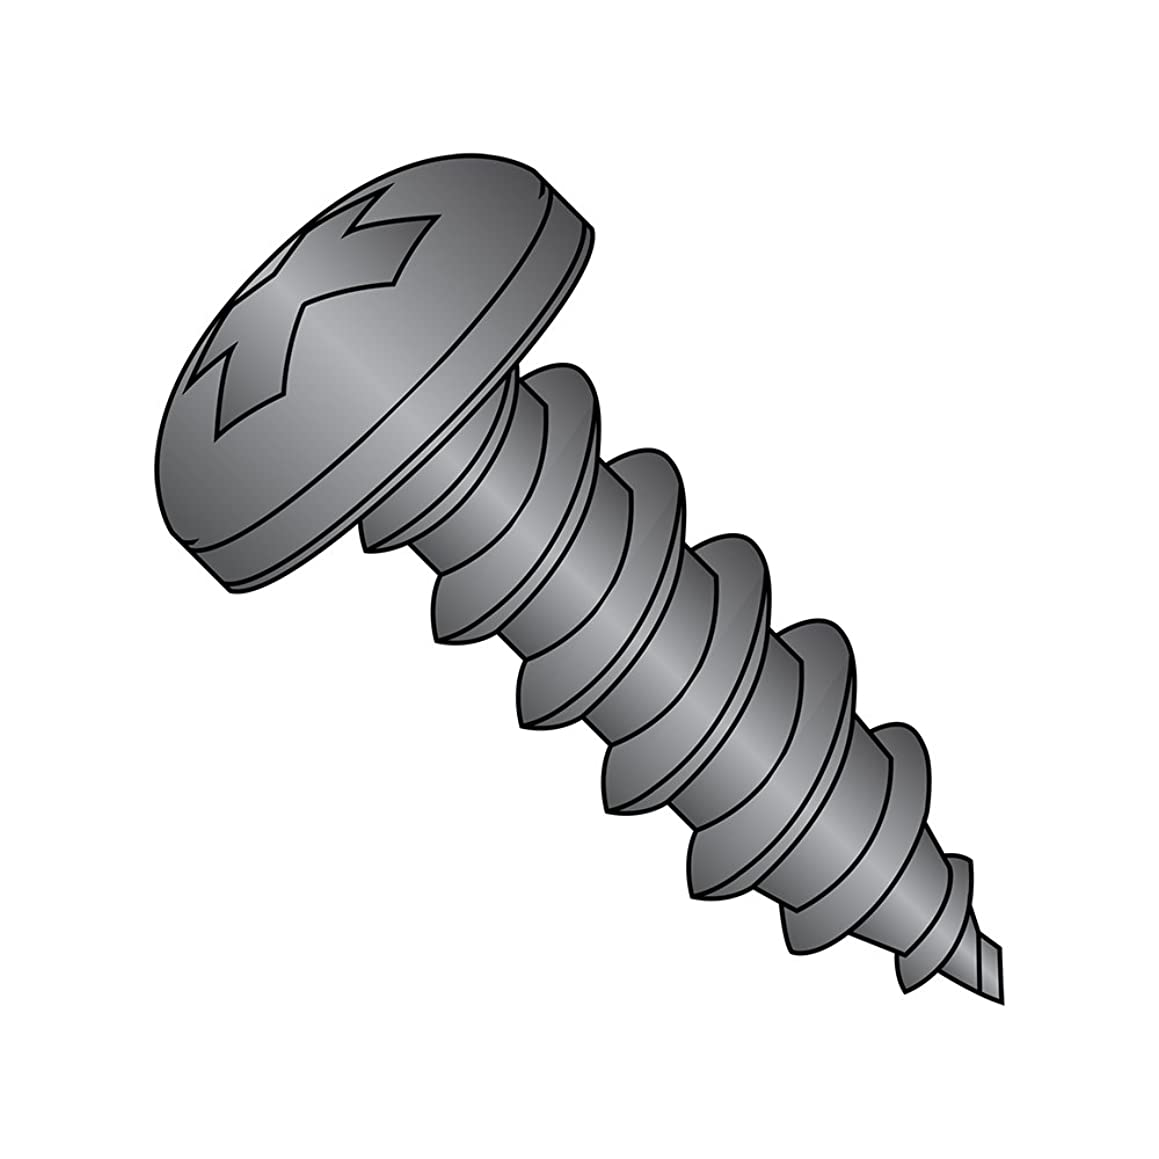 18-8 Stainless Steel Sheet Metal Screw, Black Oxide Finish, Pan Head, Phillips Drive, Type AB, #8-18 Thread Size, 1-1/4